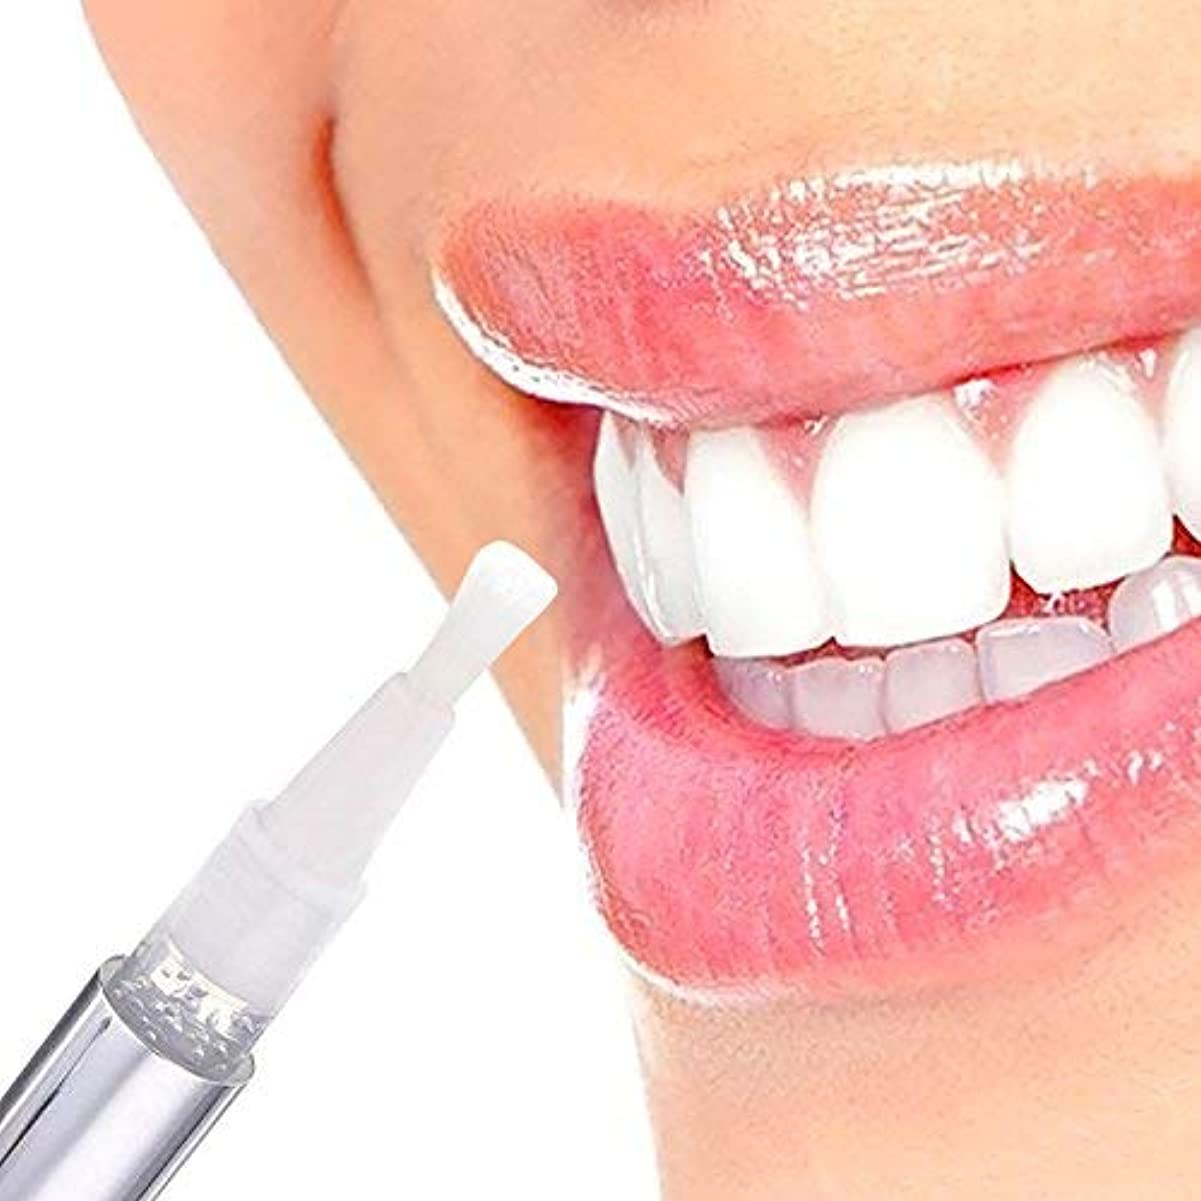 常習者年齢選出するNat 1PCS Hot Creative Effective Teeth Whitening Pen Tooth Gel Whitener Bleach Stain Eraser Sexy Celebrity Smile Teeth Care.